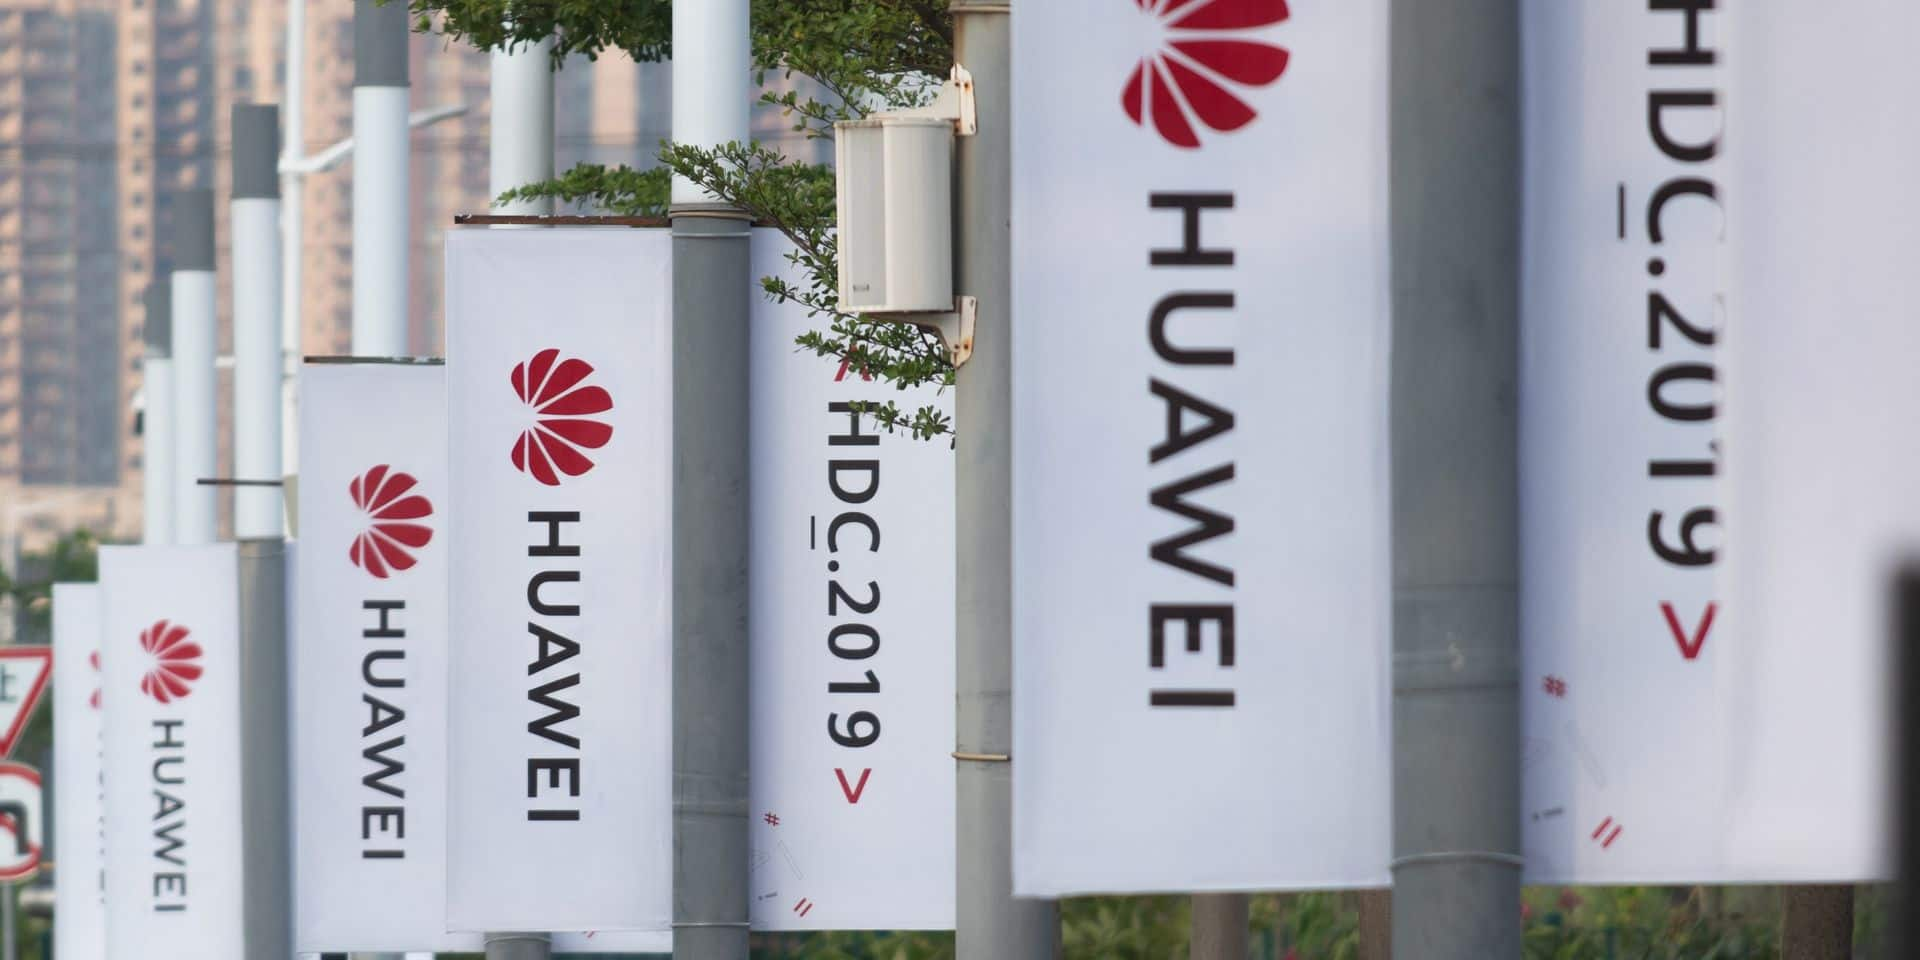 Huawei: Washington prolonge de 90 jours la période d'exemption